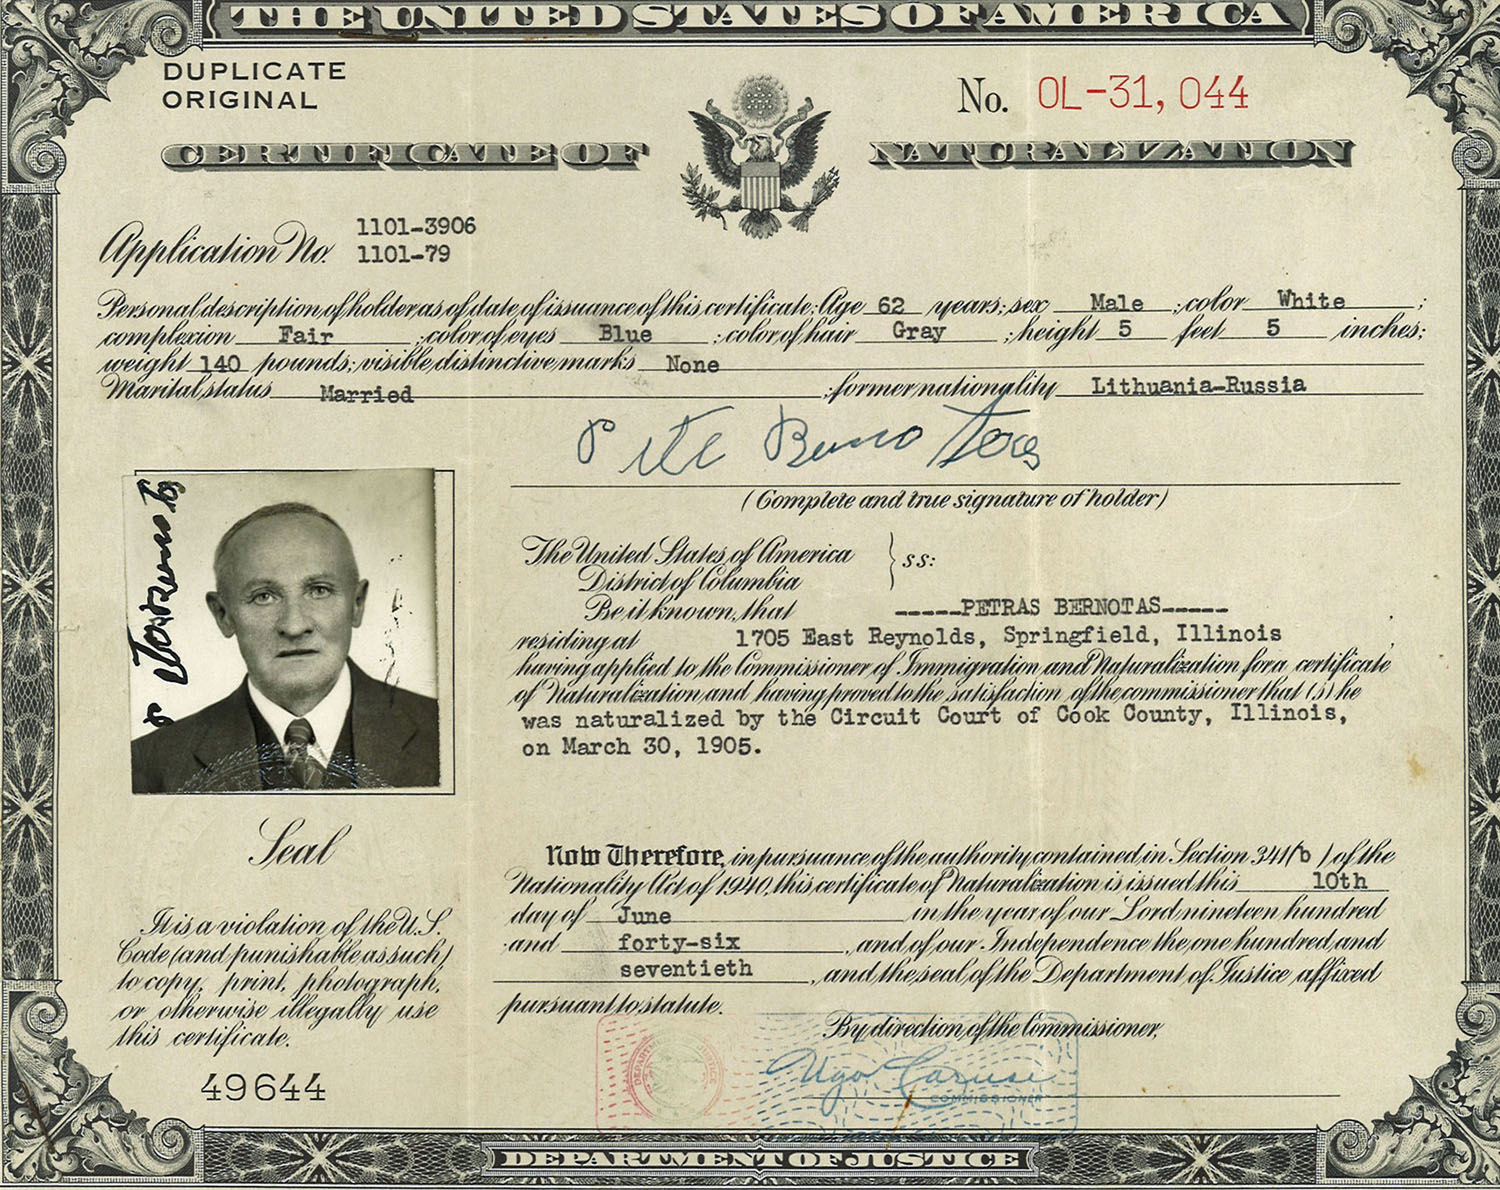 The bernotas family in photos lithuanians in springfield illinois photo of peter bernotas at age 68 in 1946 1betcityfo Choice Image